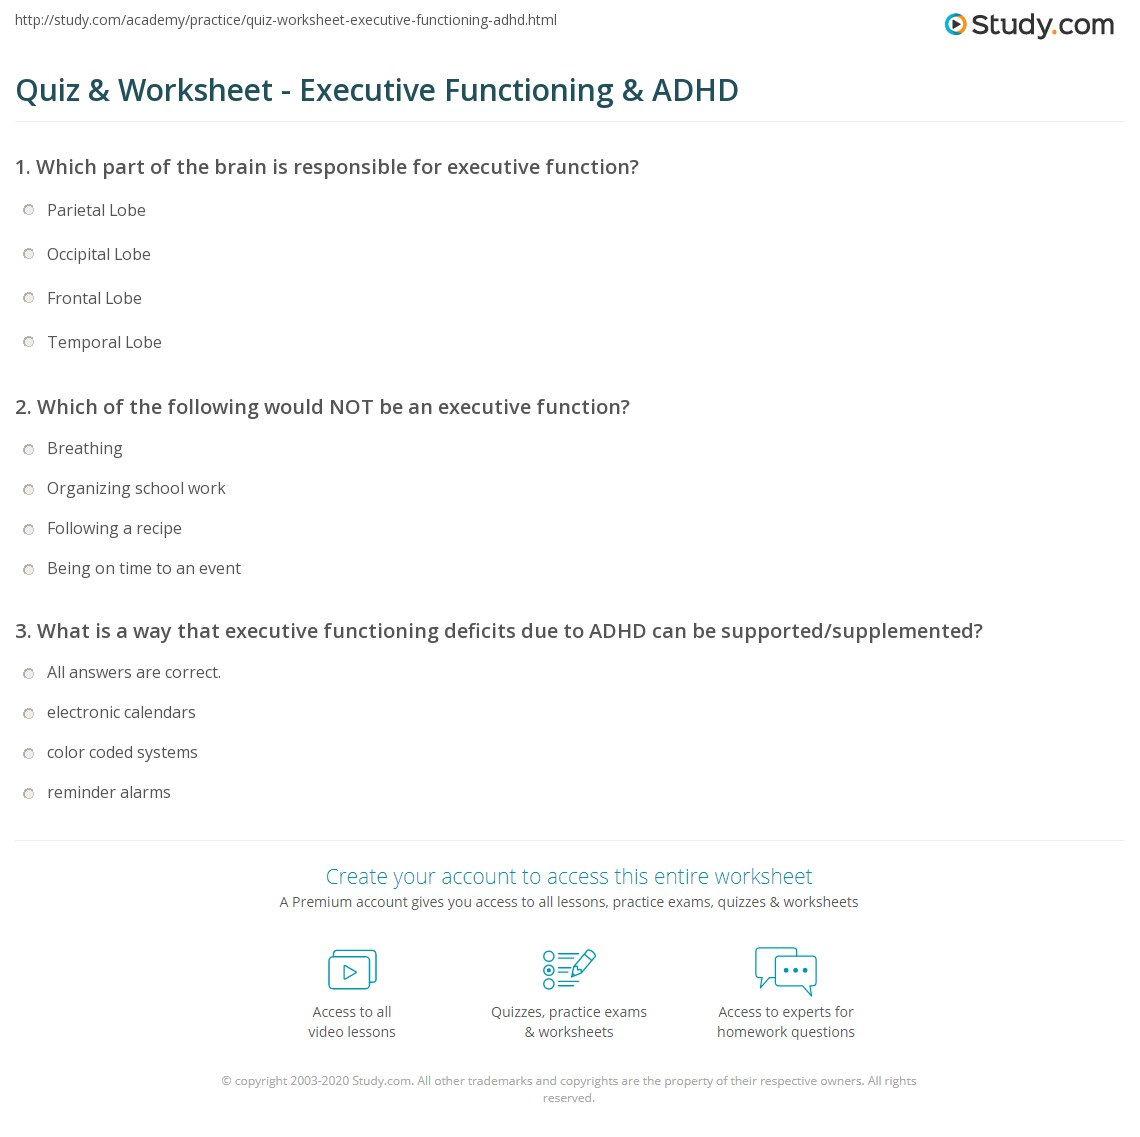 Workbooks worksheets for adhd : Quiz & Worksheet - Executive Functioning & ADHD   Study.com